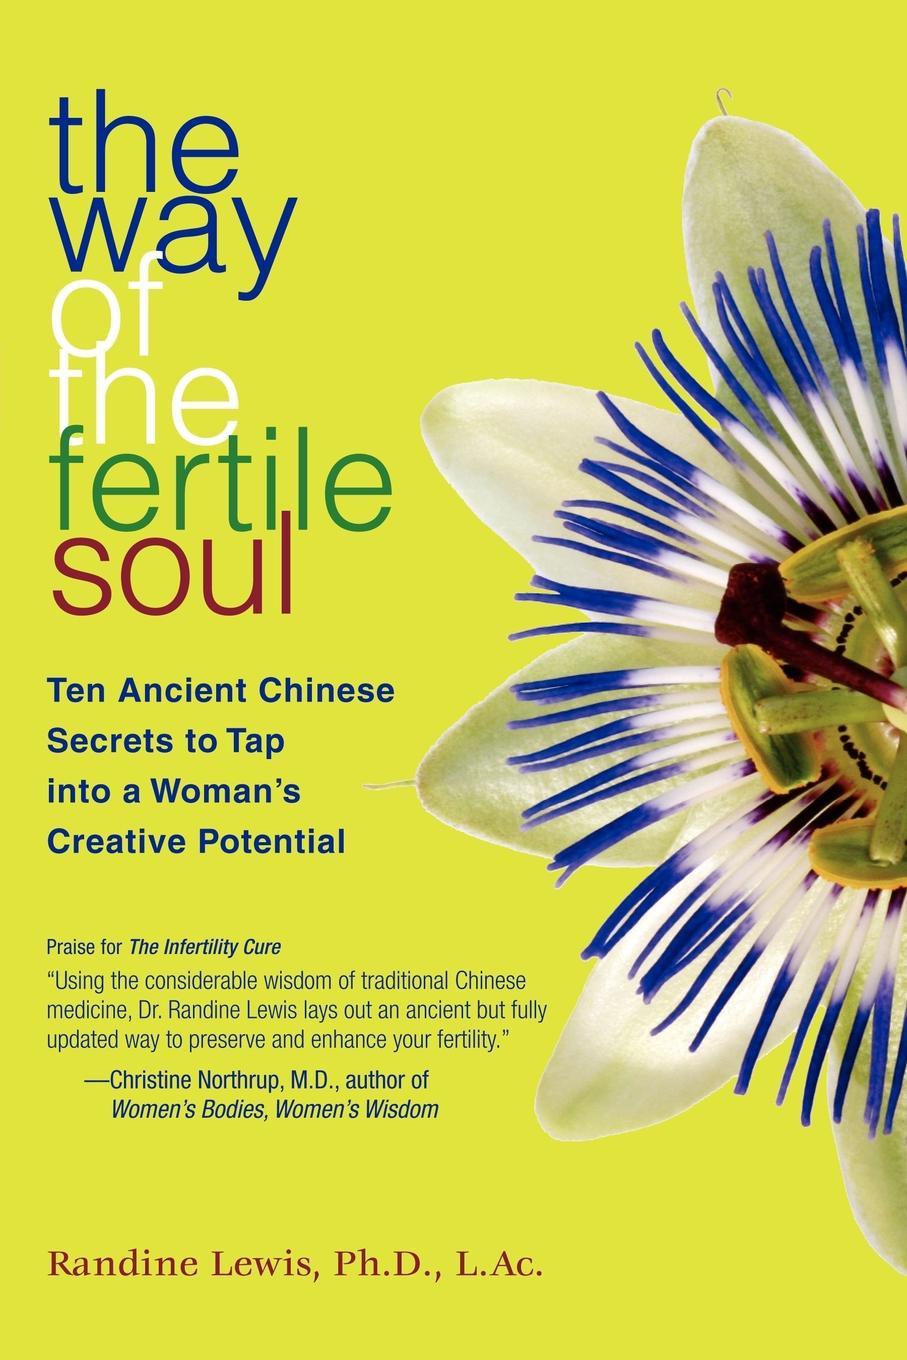 Randine Lewis The Way of the Fertile Soul. Ten Ancient Chinese Secrets to Tap Into a Woman's Creative Potential chinese ancient battles of the war the opium war one of the 2015 chinese ten book jane mijal khodorkovsky award winners